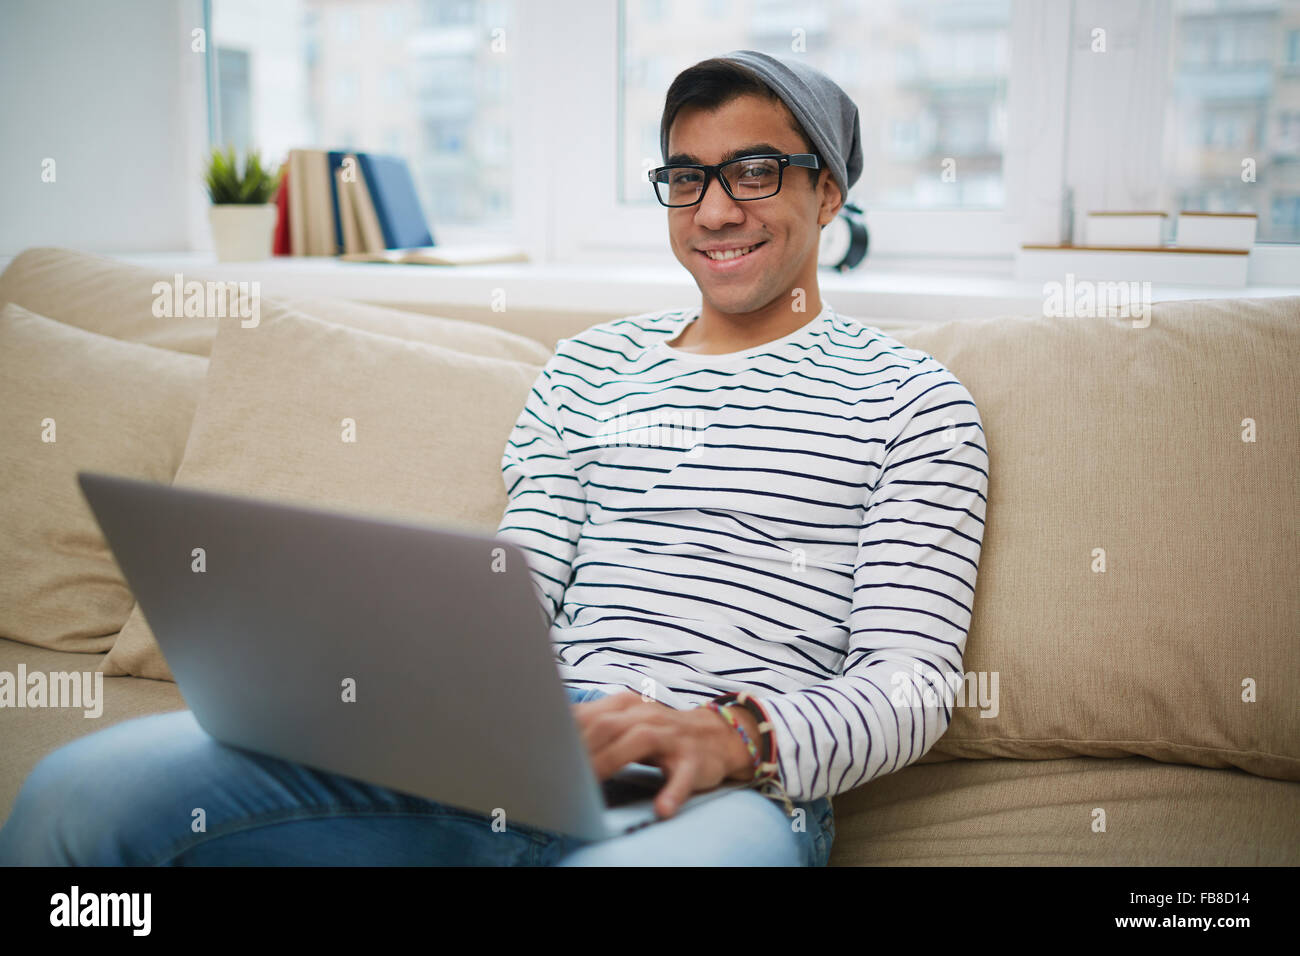 Handsome guy in casual-wear networking and looking at camera Photo Stock